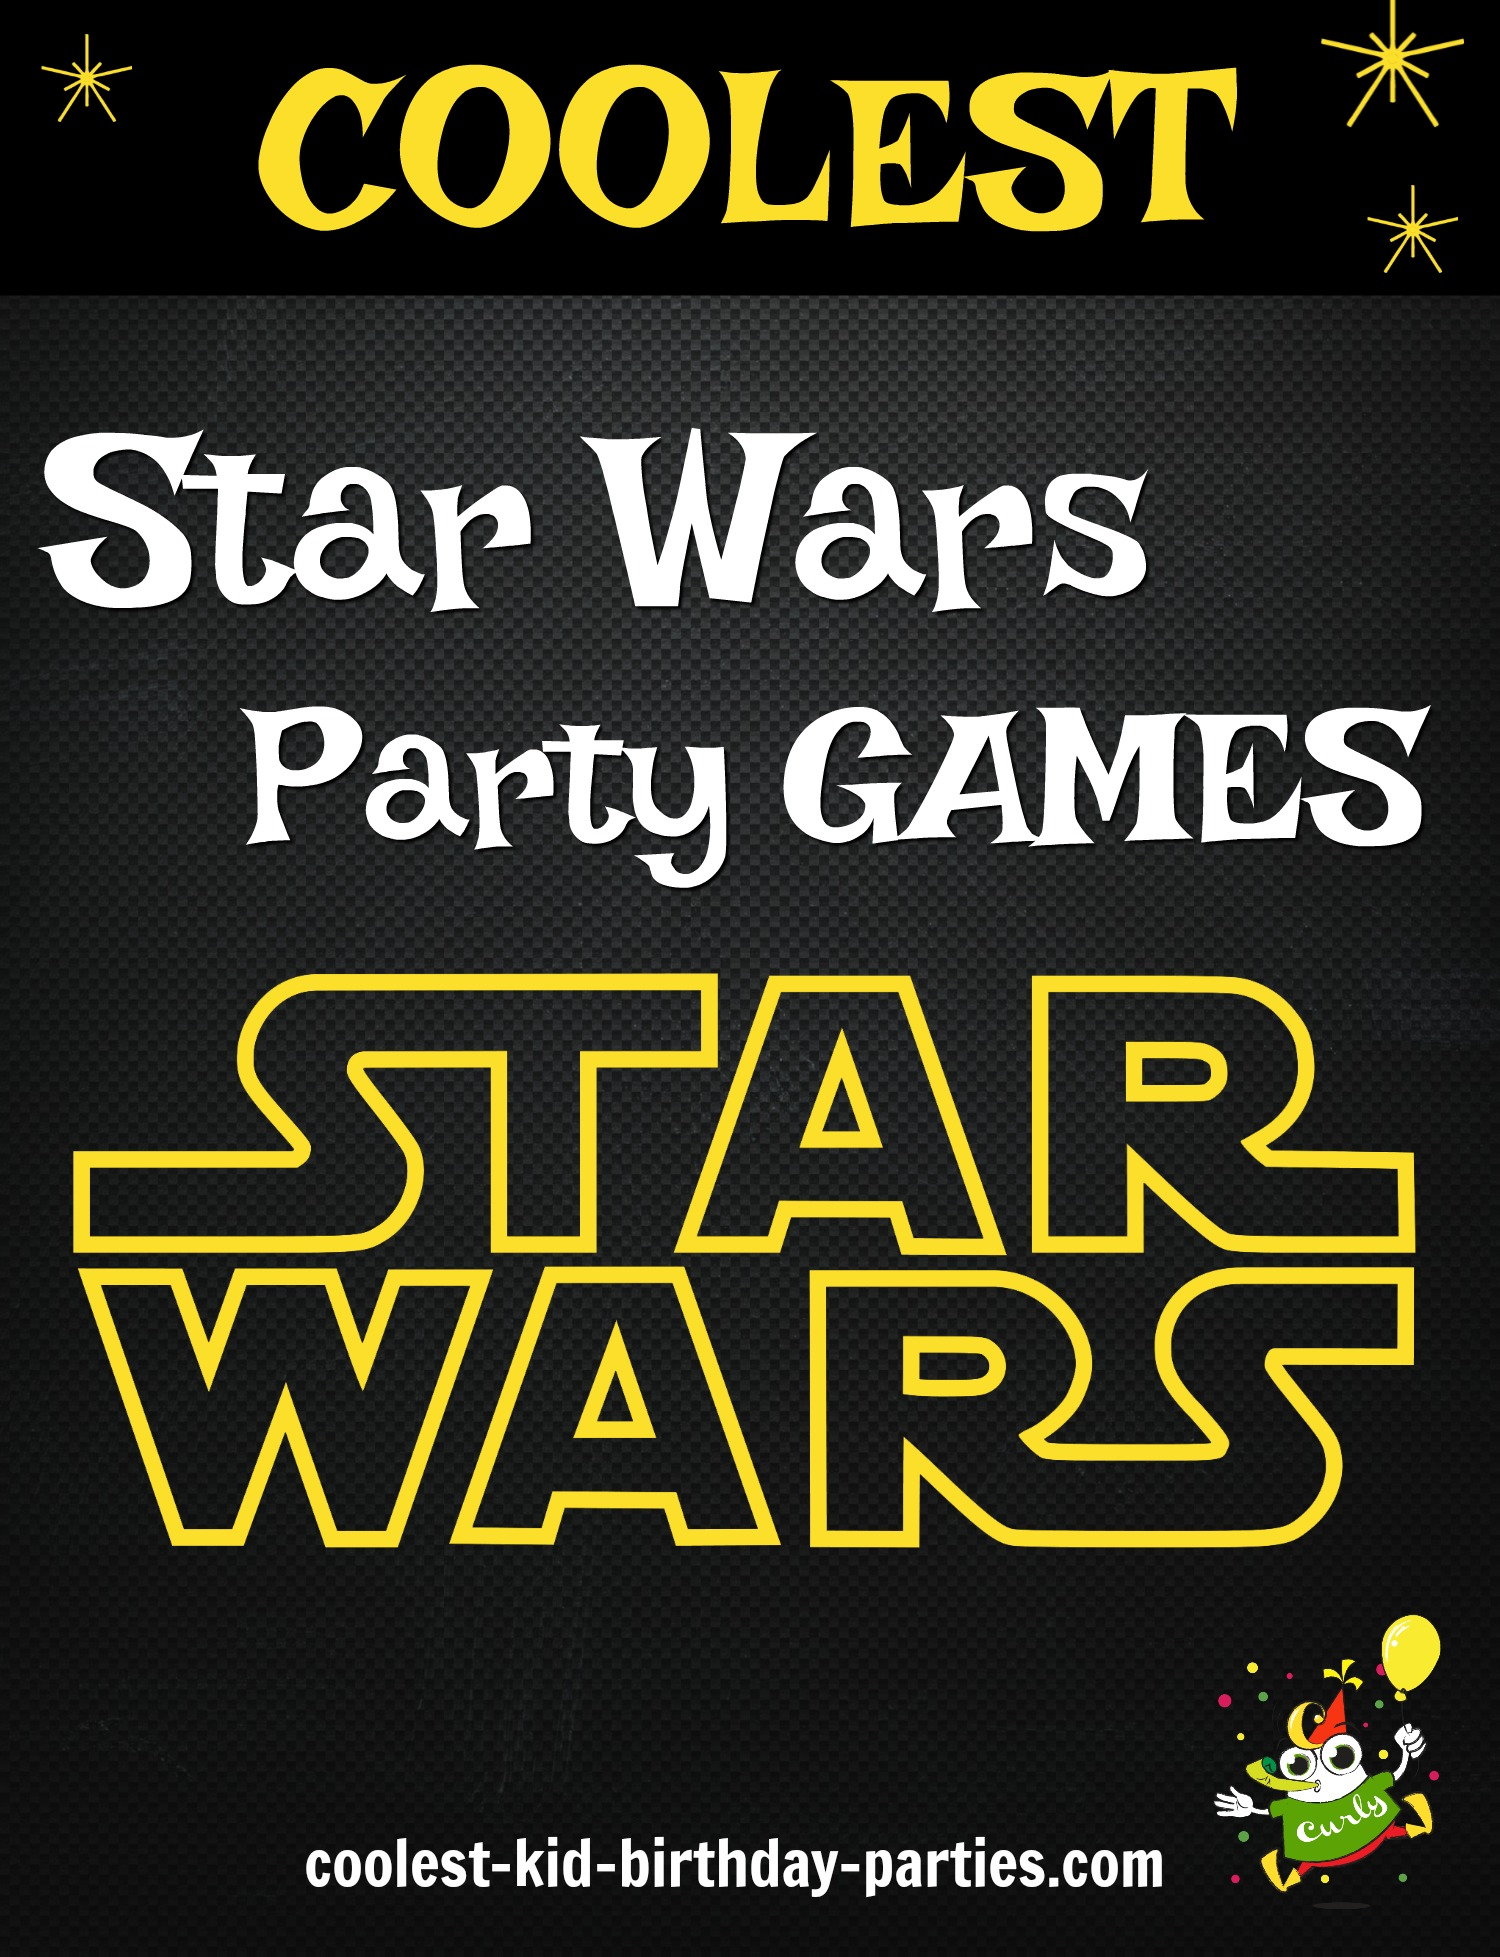 Star Wars Birthday Party Games